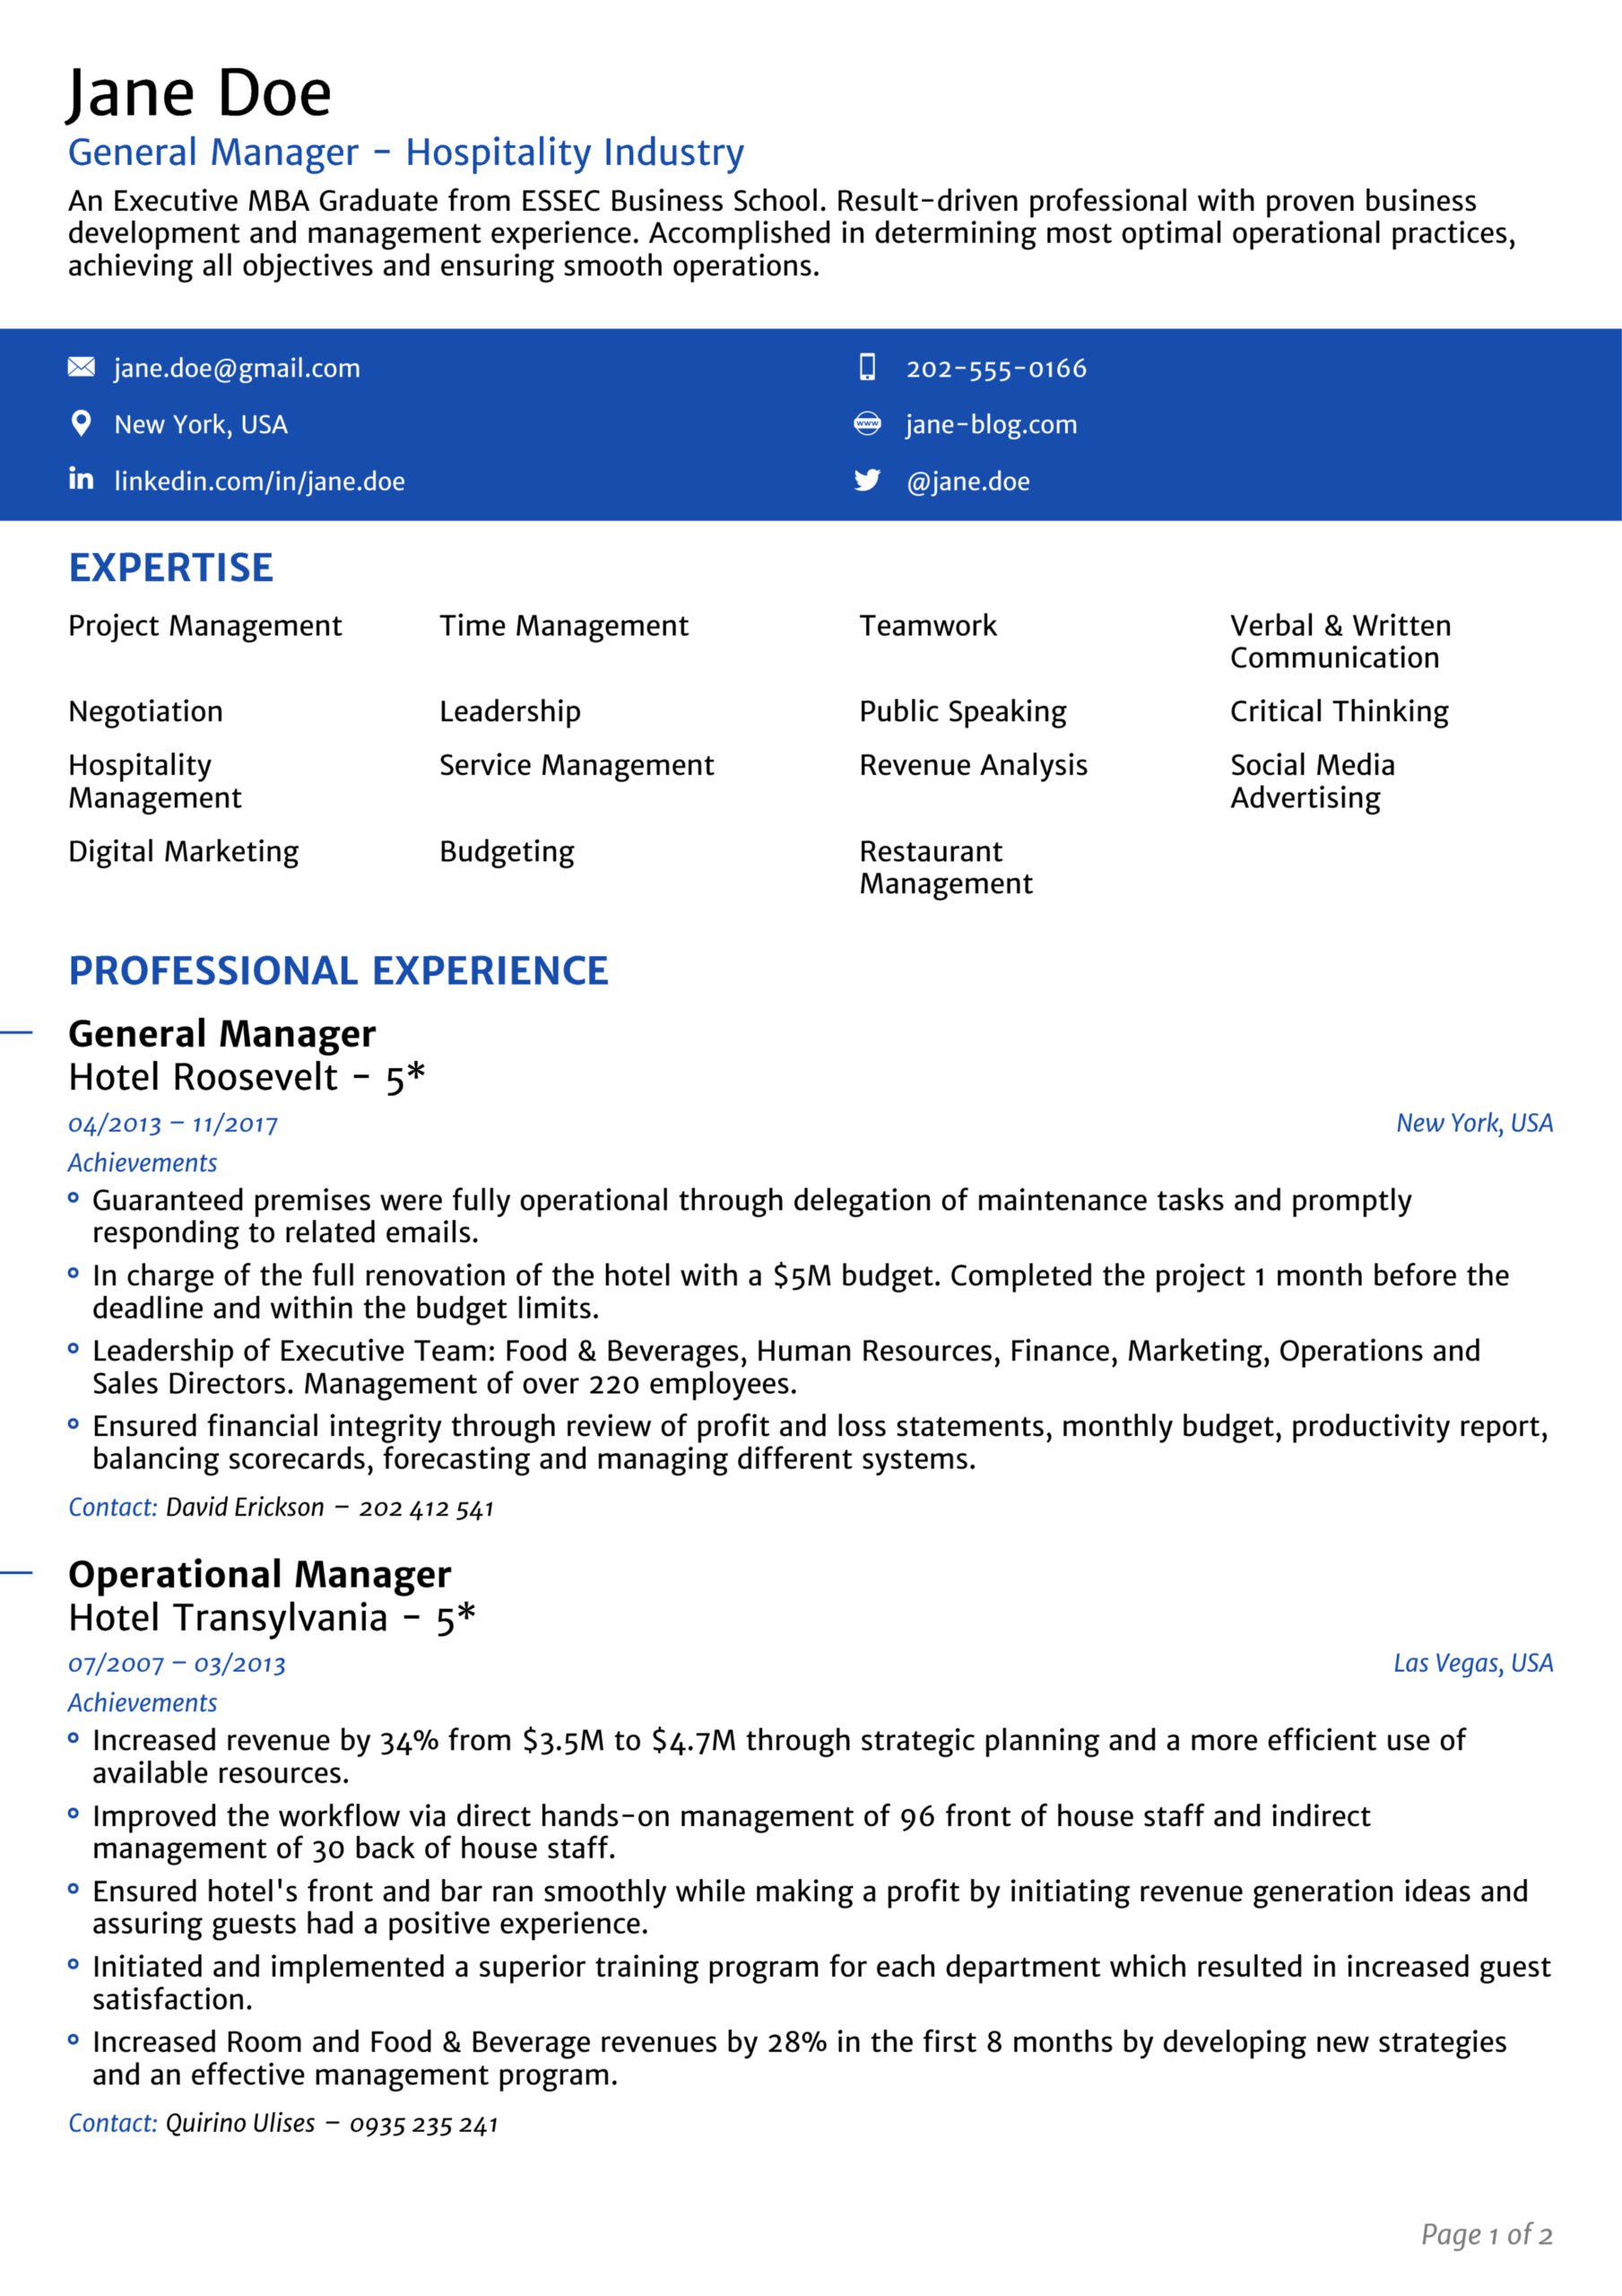 job titles examples for your resume search best title fresher in position desired sample Resume Best Resume Title For Fresher